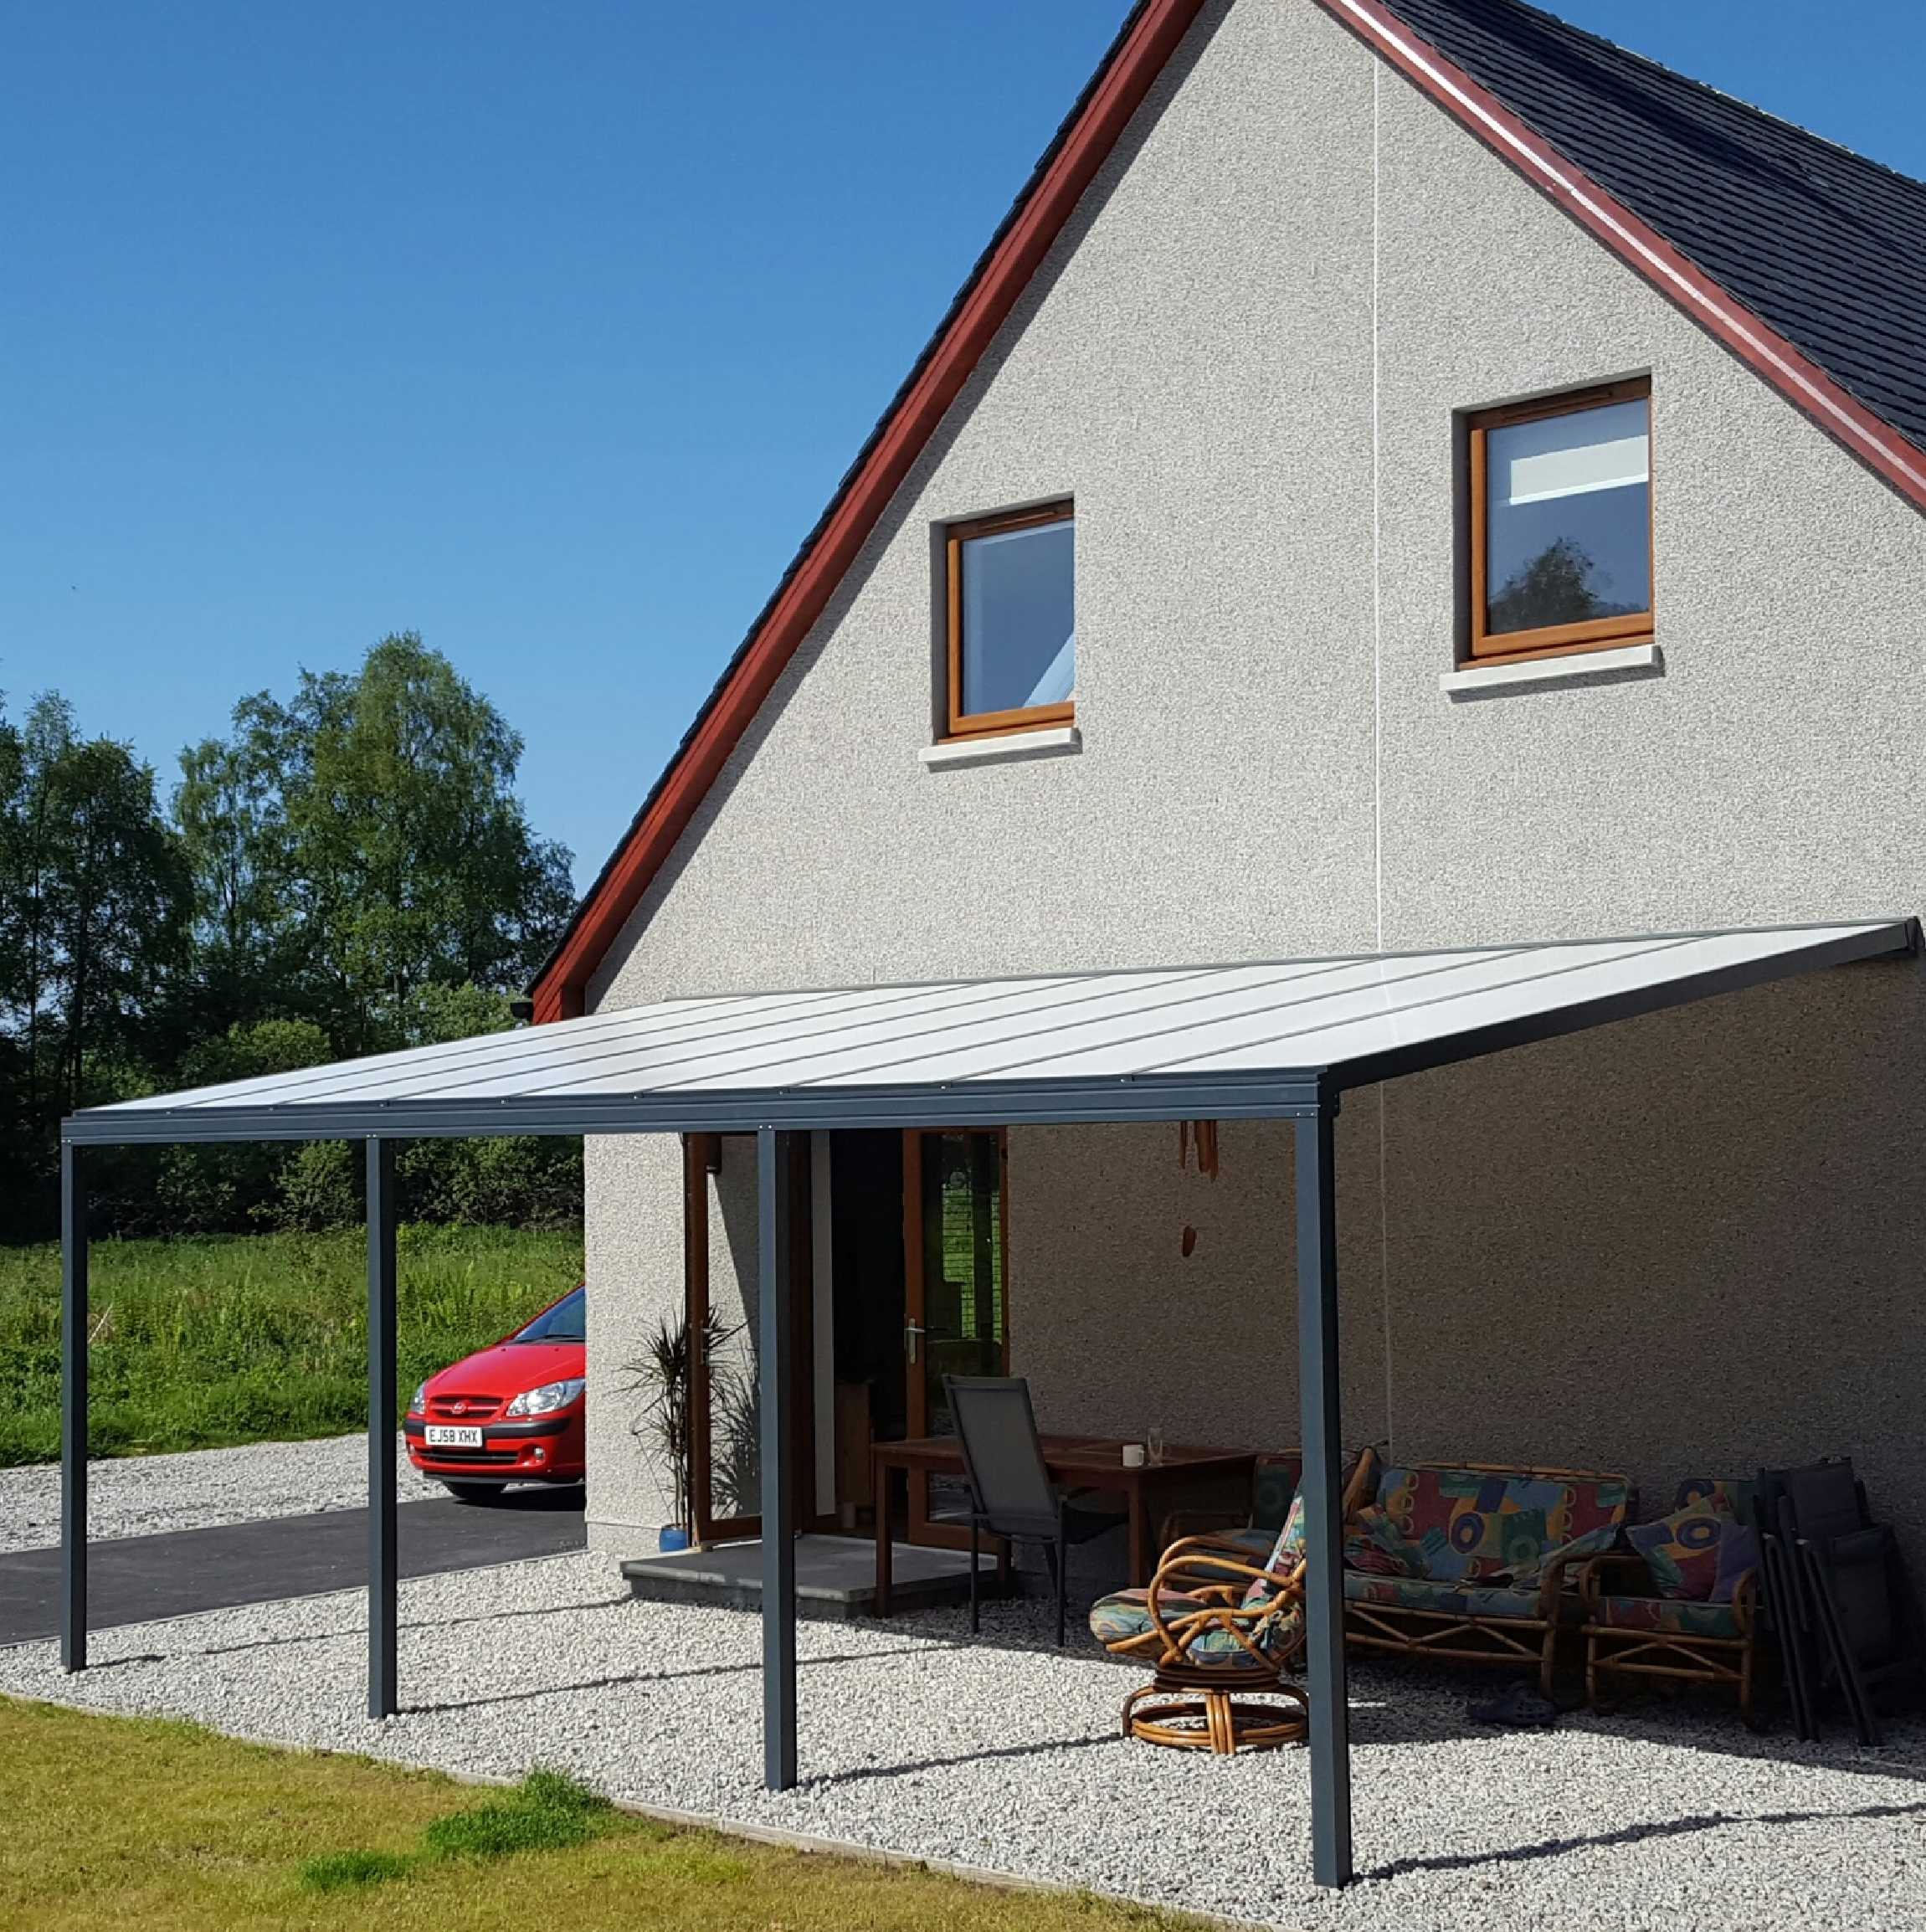 Great selection of Omega Smart Lean-To Canopy, Anthracite Grey, 16mm Polycarbonate Glazing - 12.0m (W) x 4.5m (P), (5) Supporting Posts